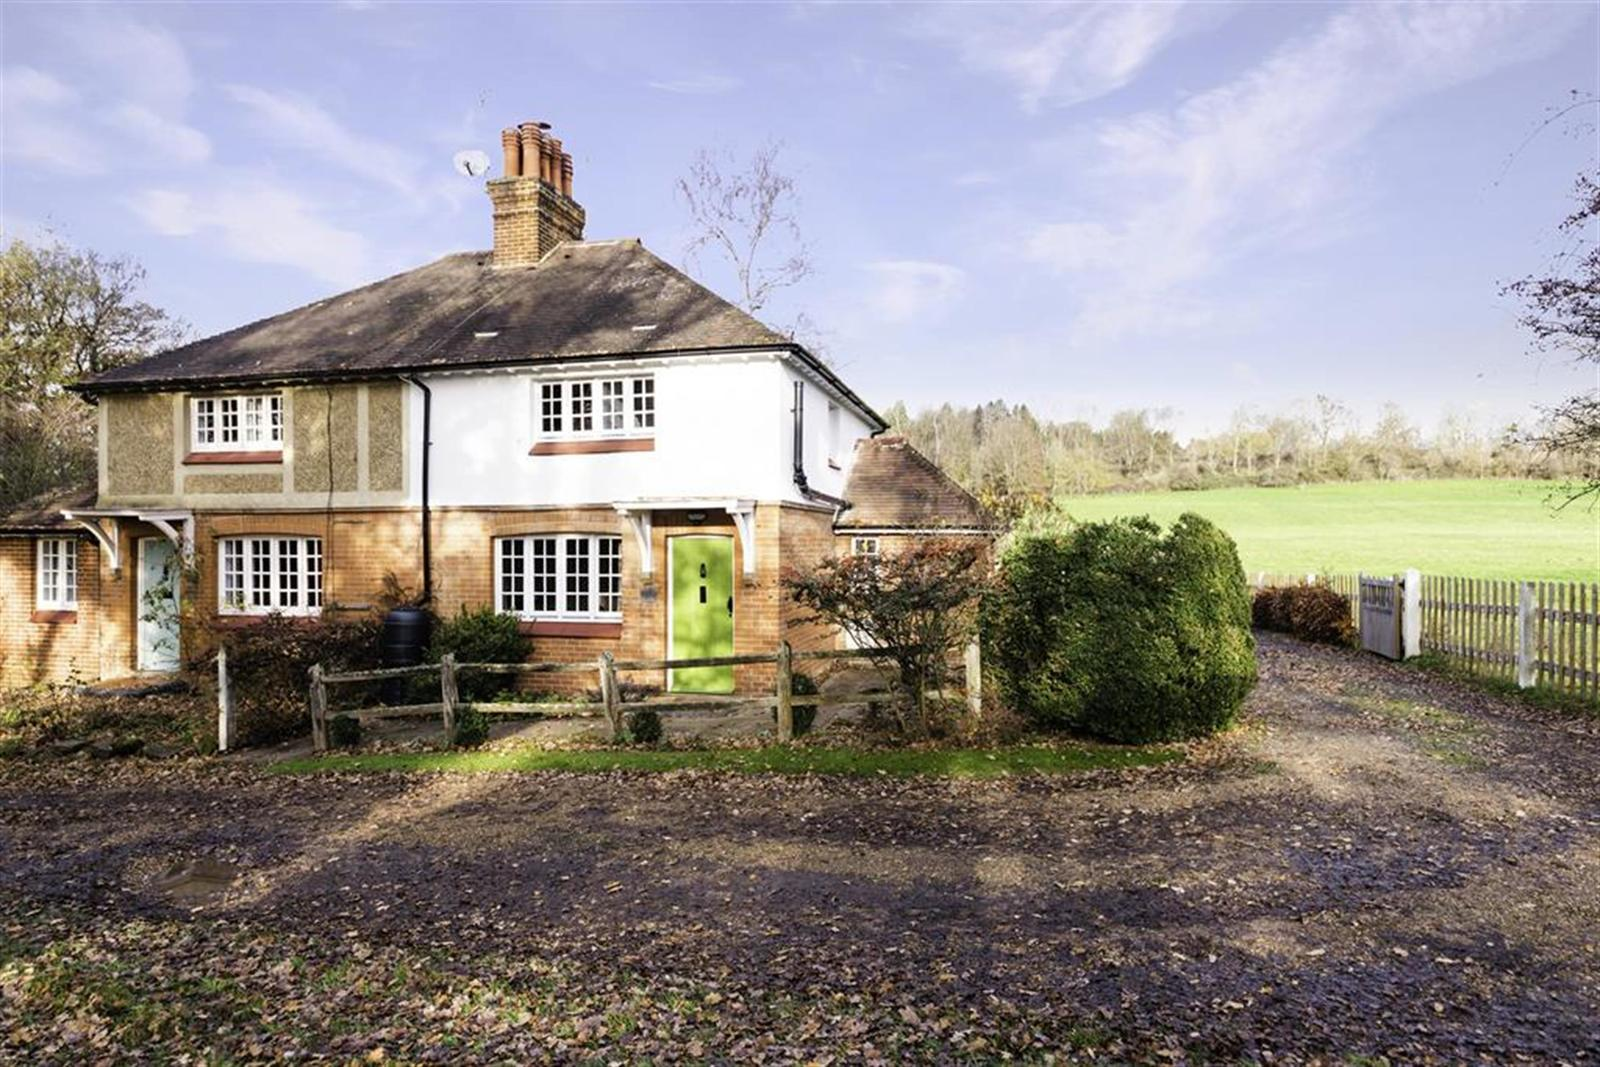 Colgate Barn Cottages, Coopers Hill Road, Nutfield, RH1 4HX Image 1